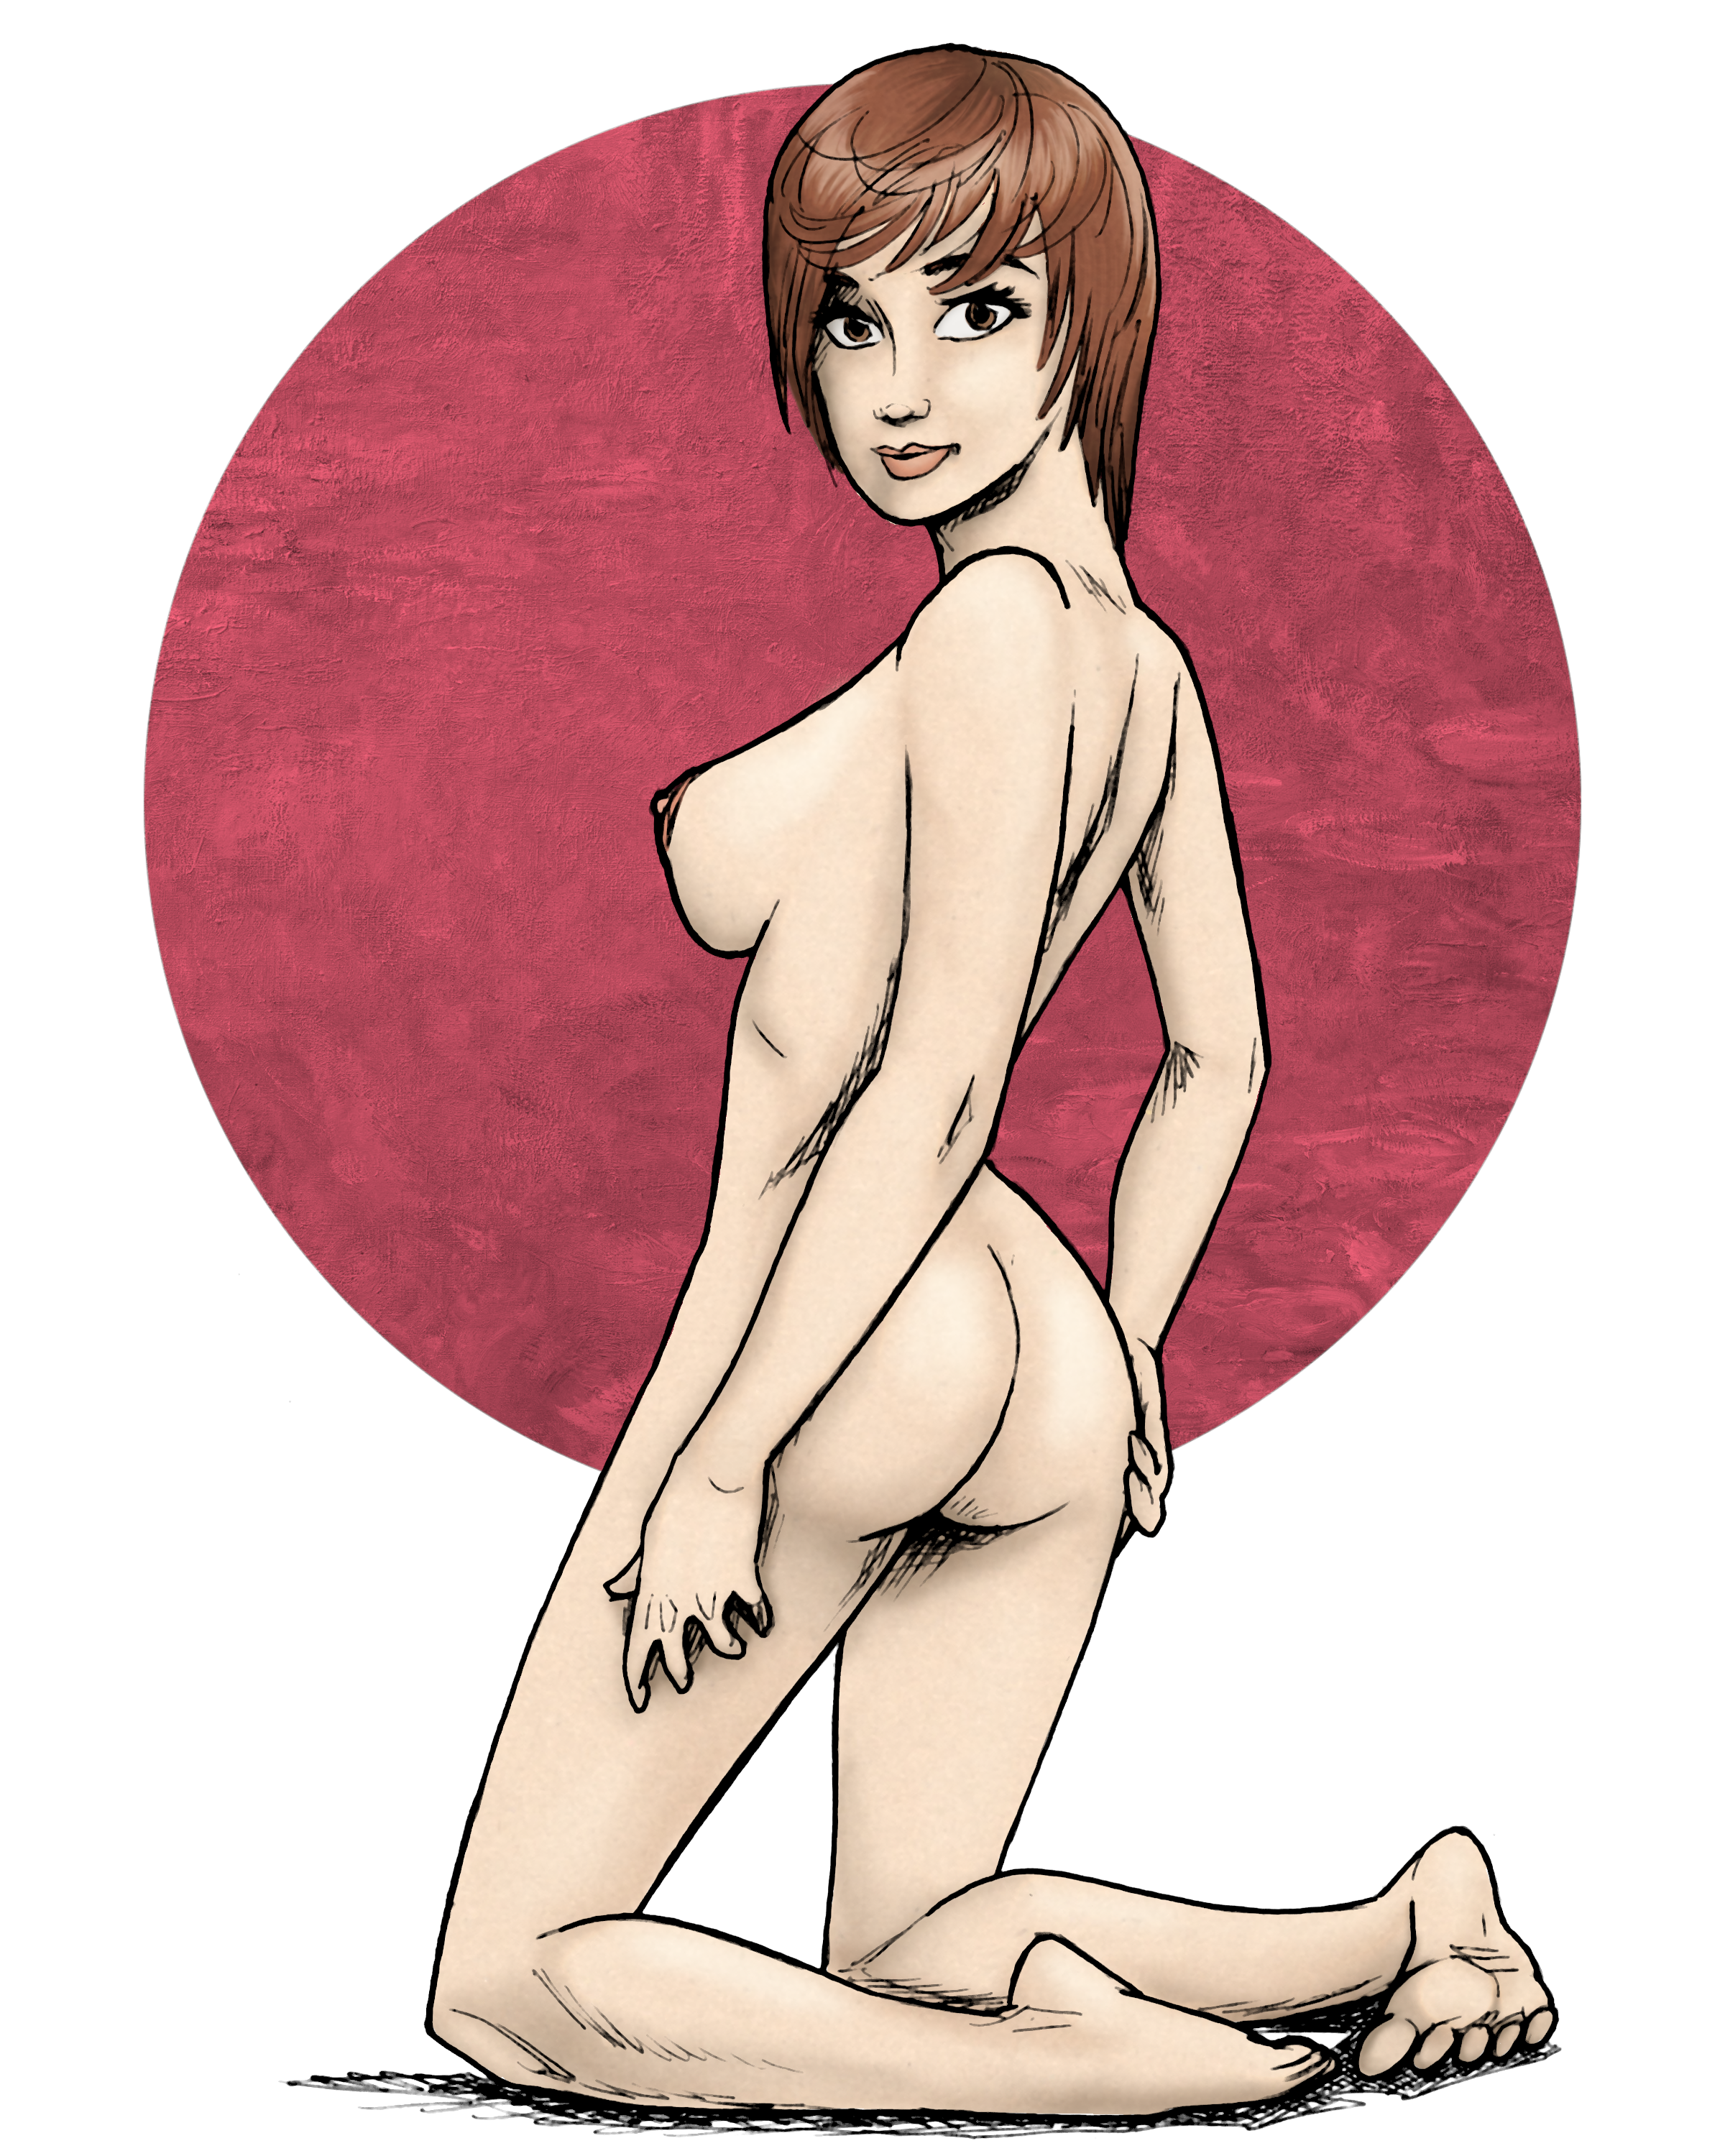 Toozie Chen in-life nude pin-up.